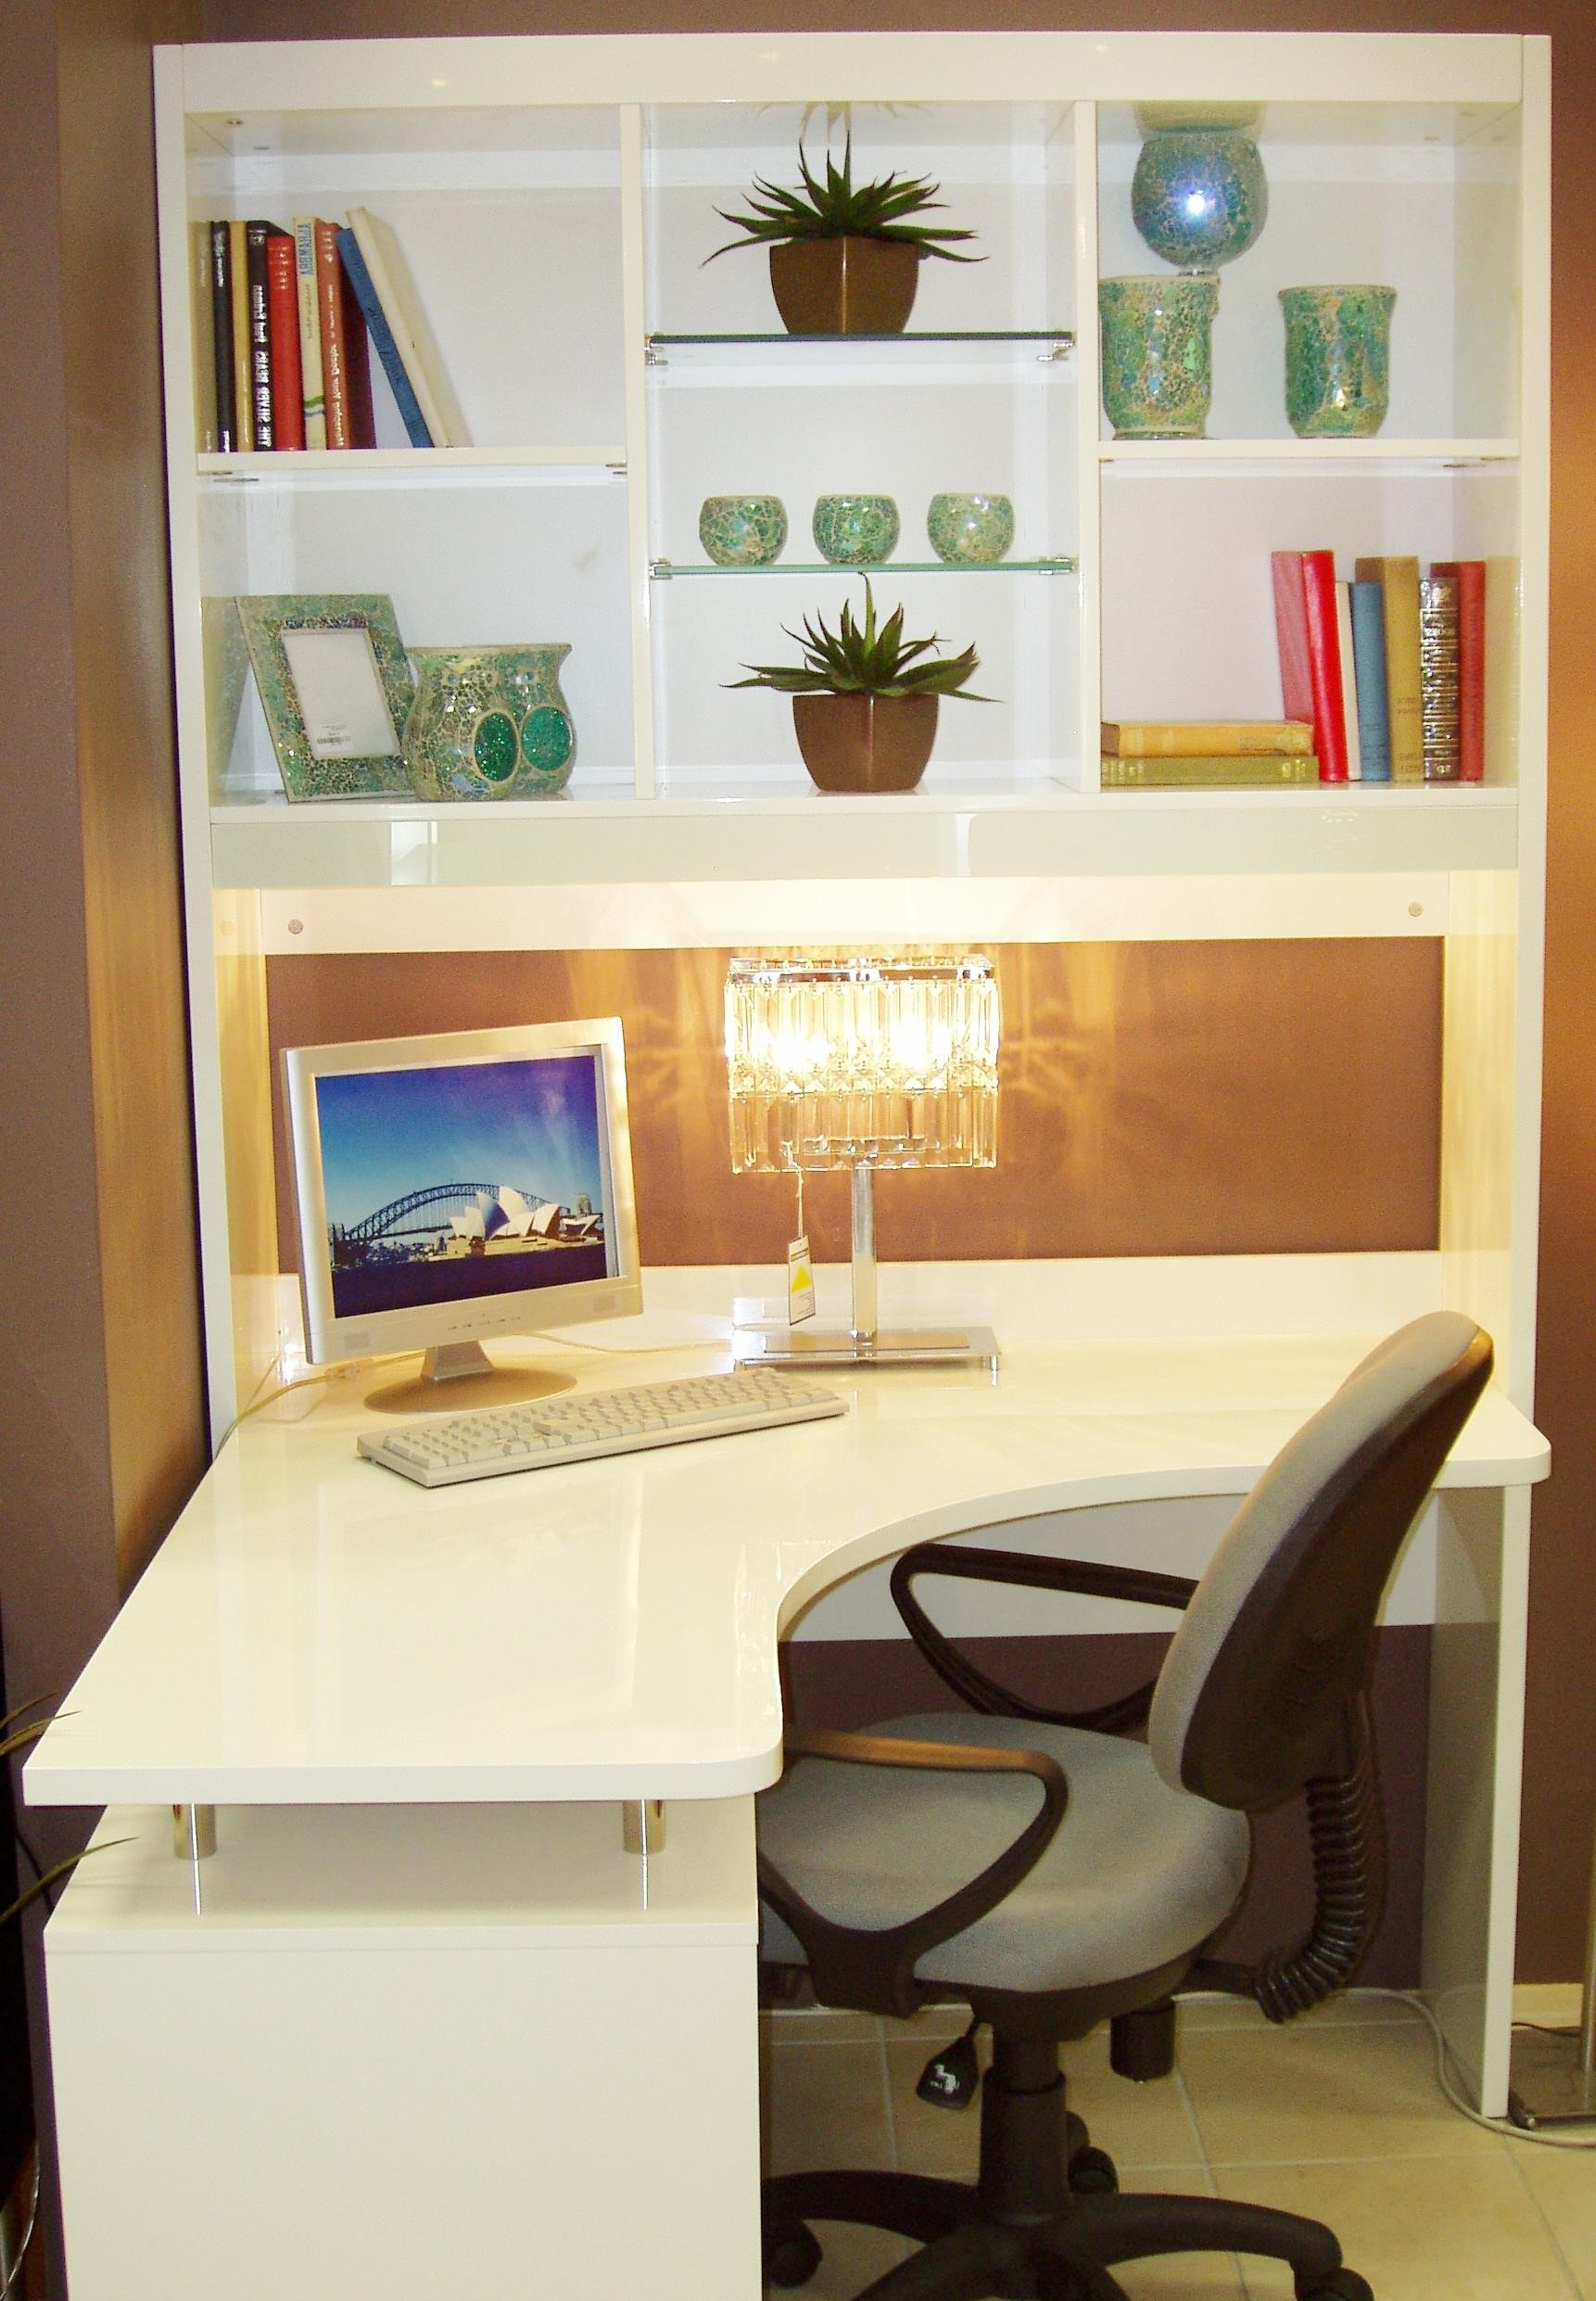 Amazing White Corner Desk With Shelves : white corner desk with shelves White corner desk with shelves